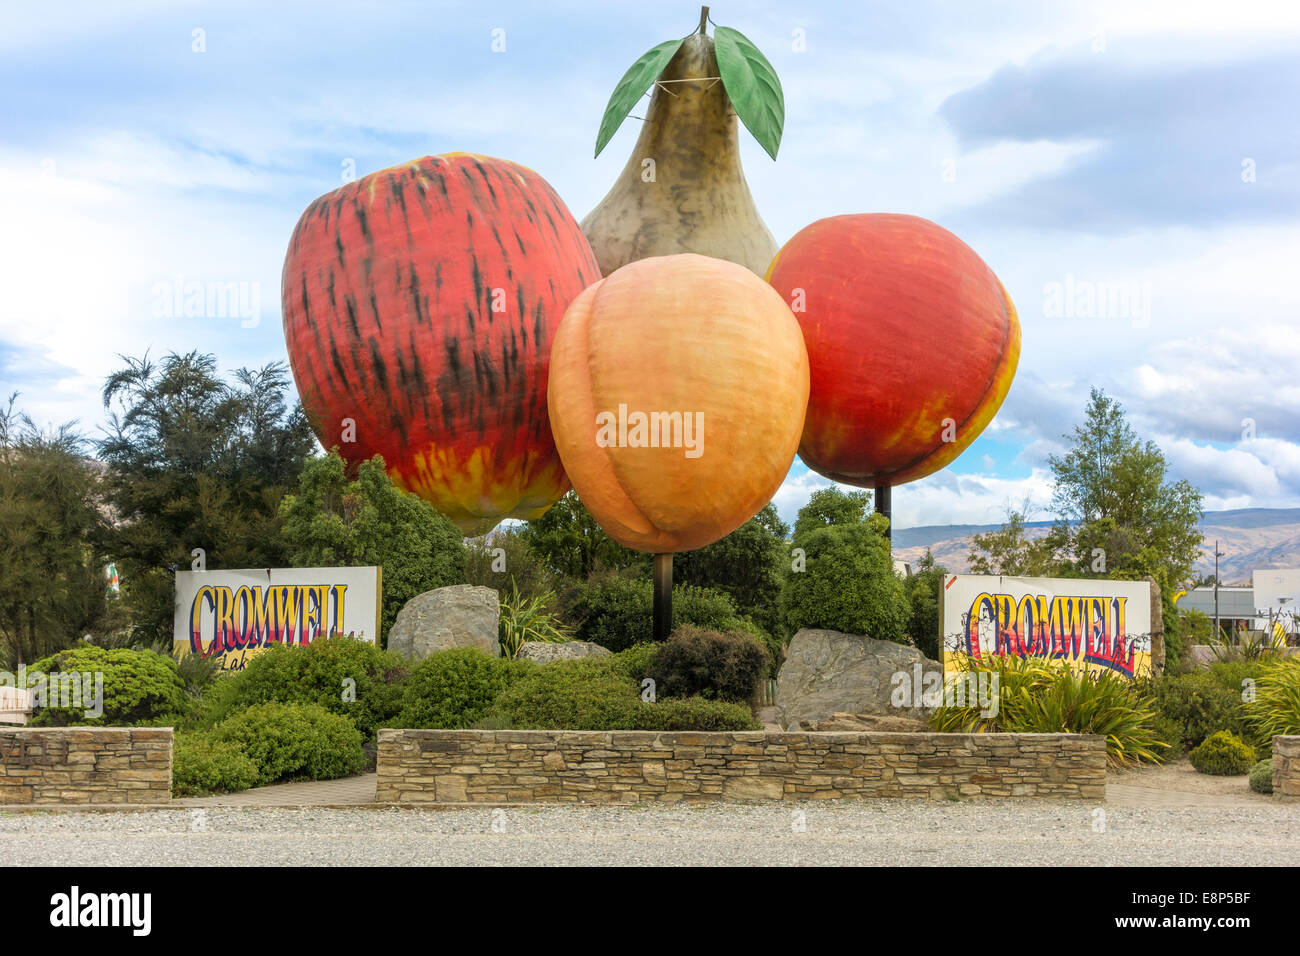 Giant Fruit sculpture at the entrance to Cromwell Otago New Zealand Roadside Attraction Big Things Apple Pear Apricot Stock Photo